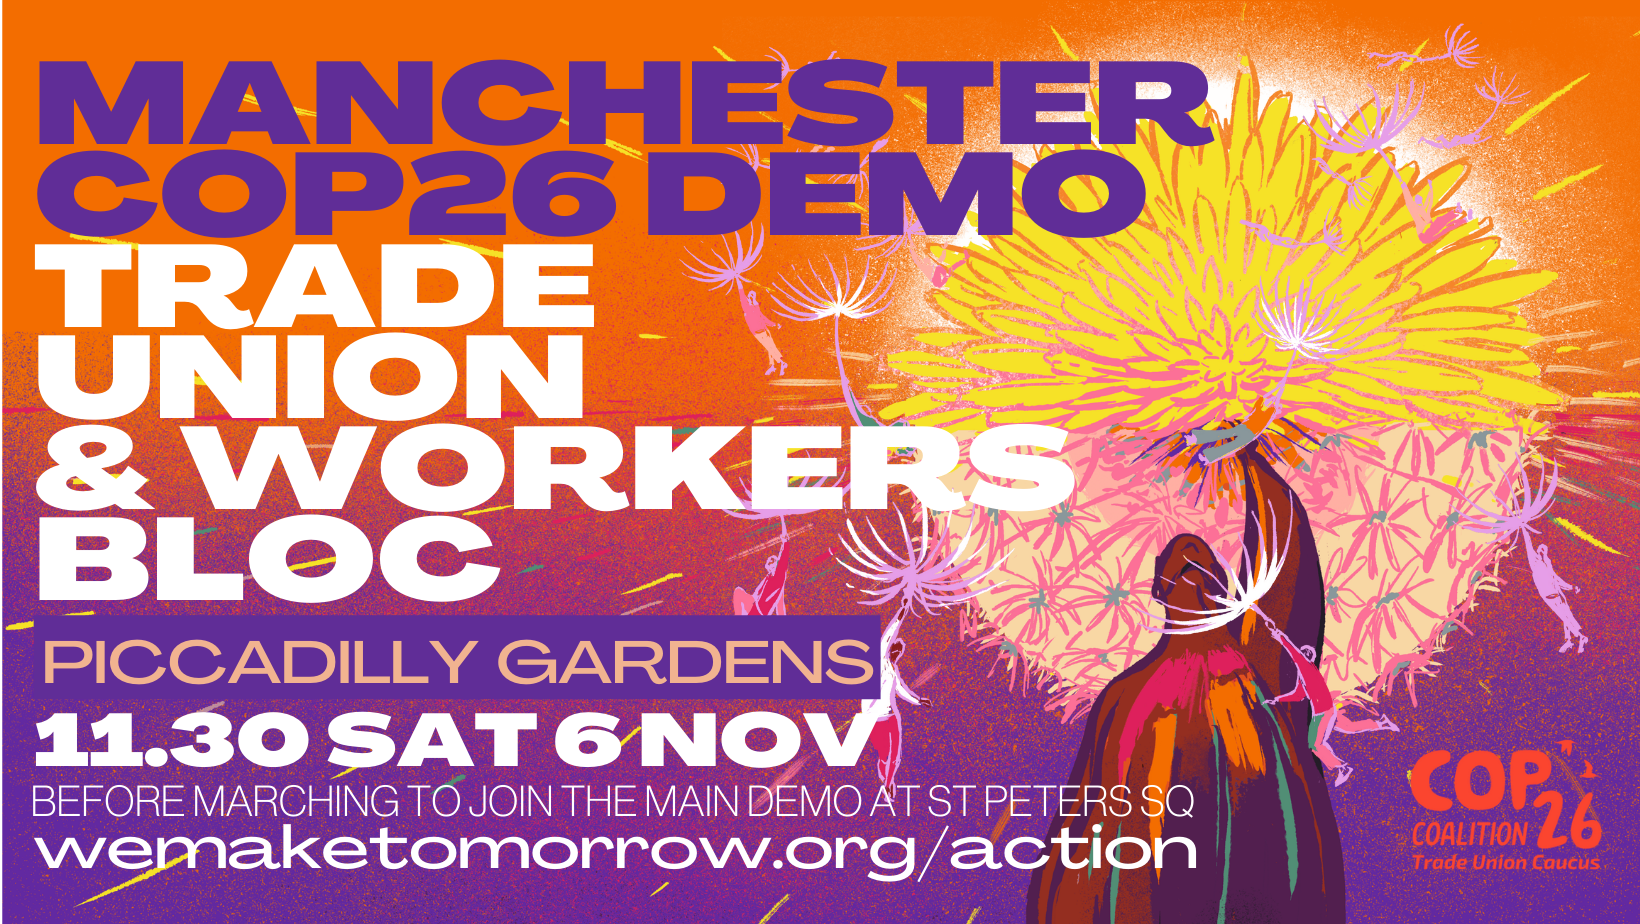 Image with text which reads: Manchester COP26 demo Trade union & workers bloc Piccadilly Gardens 11:30 Sat 6 Nov Before marching to join the main demo at St Peter's Square wemaketomorrow.org/action